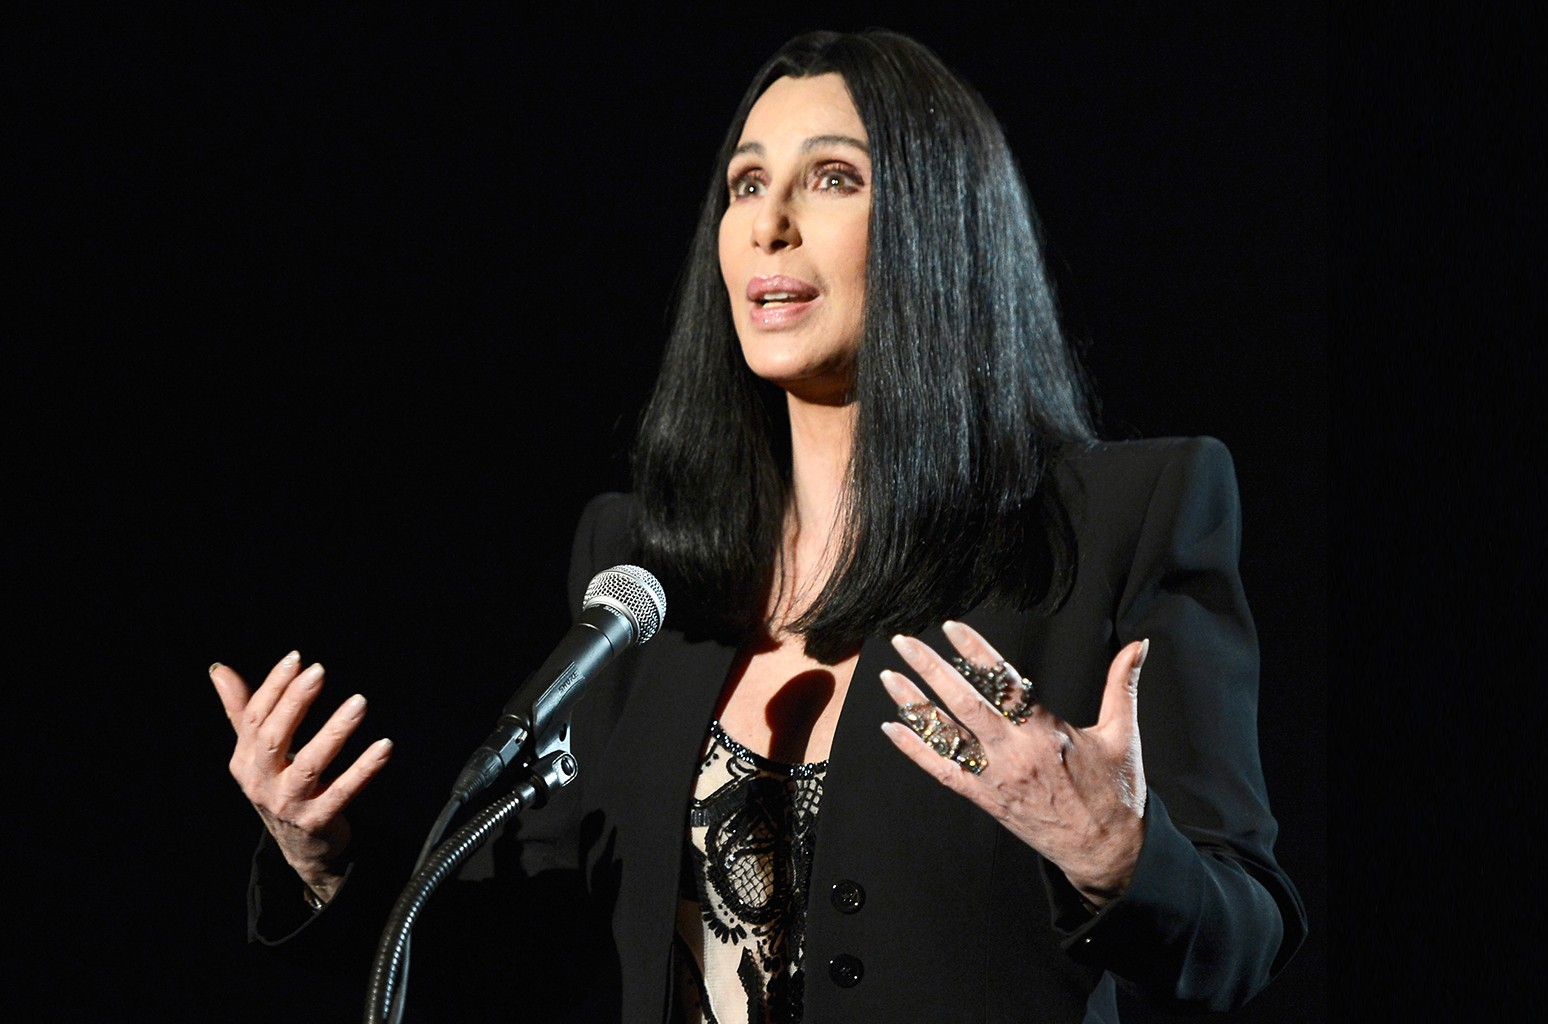 Cher photographed in 2013